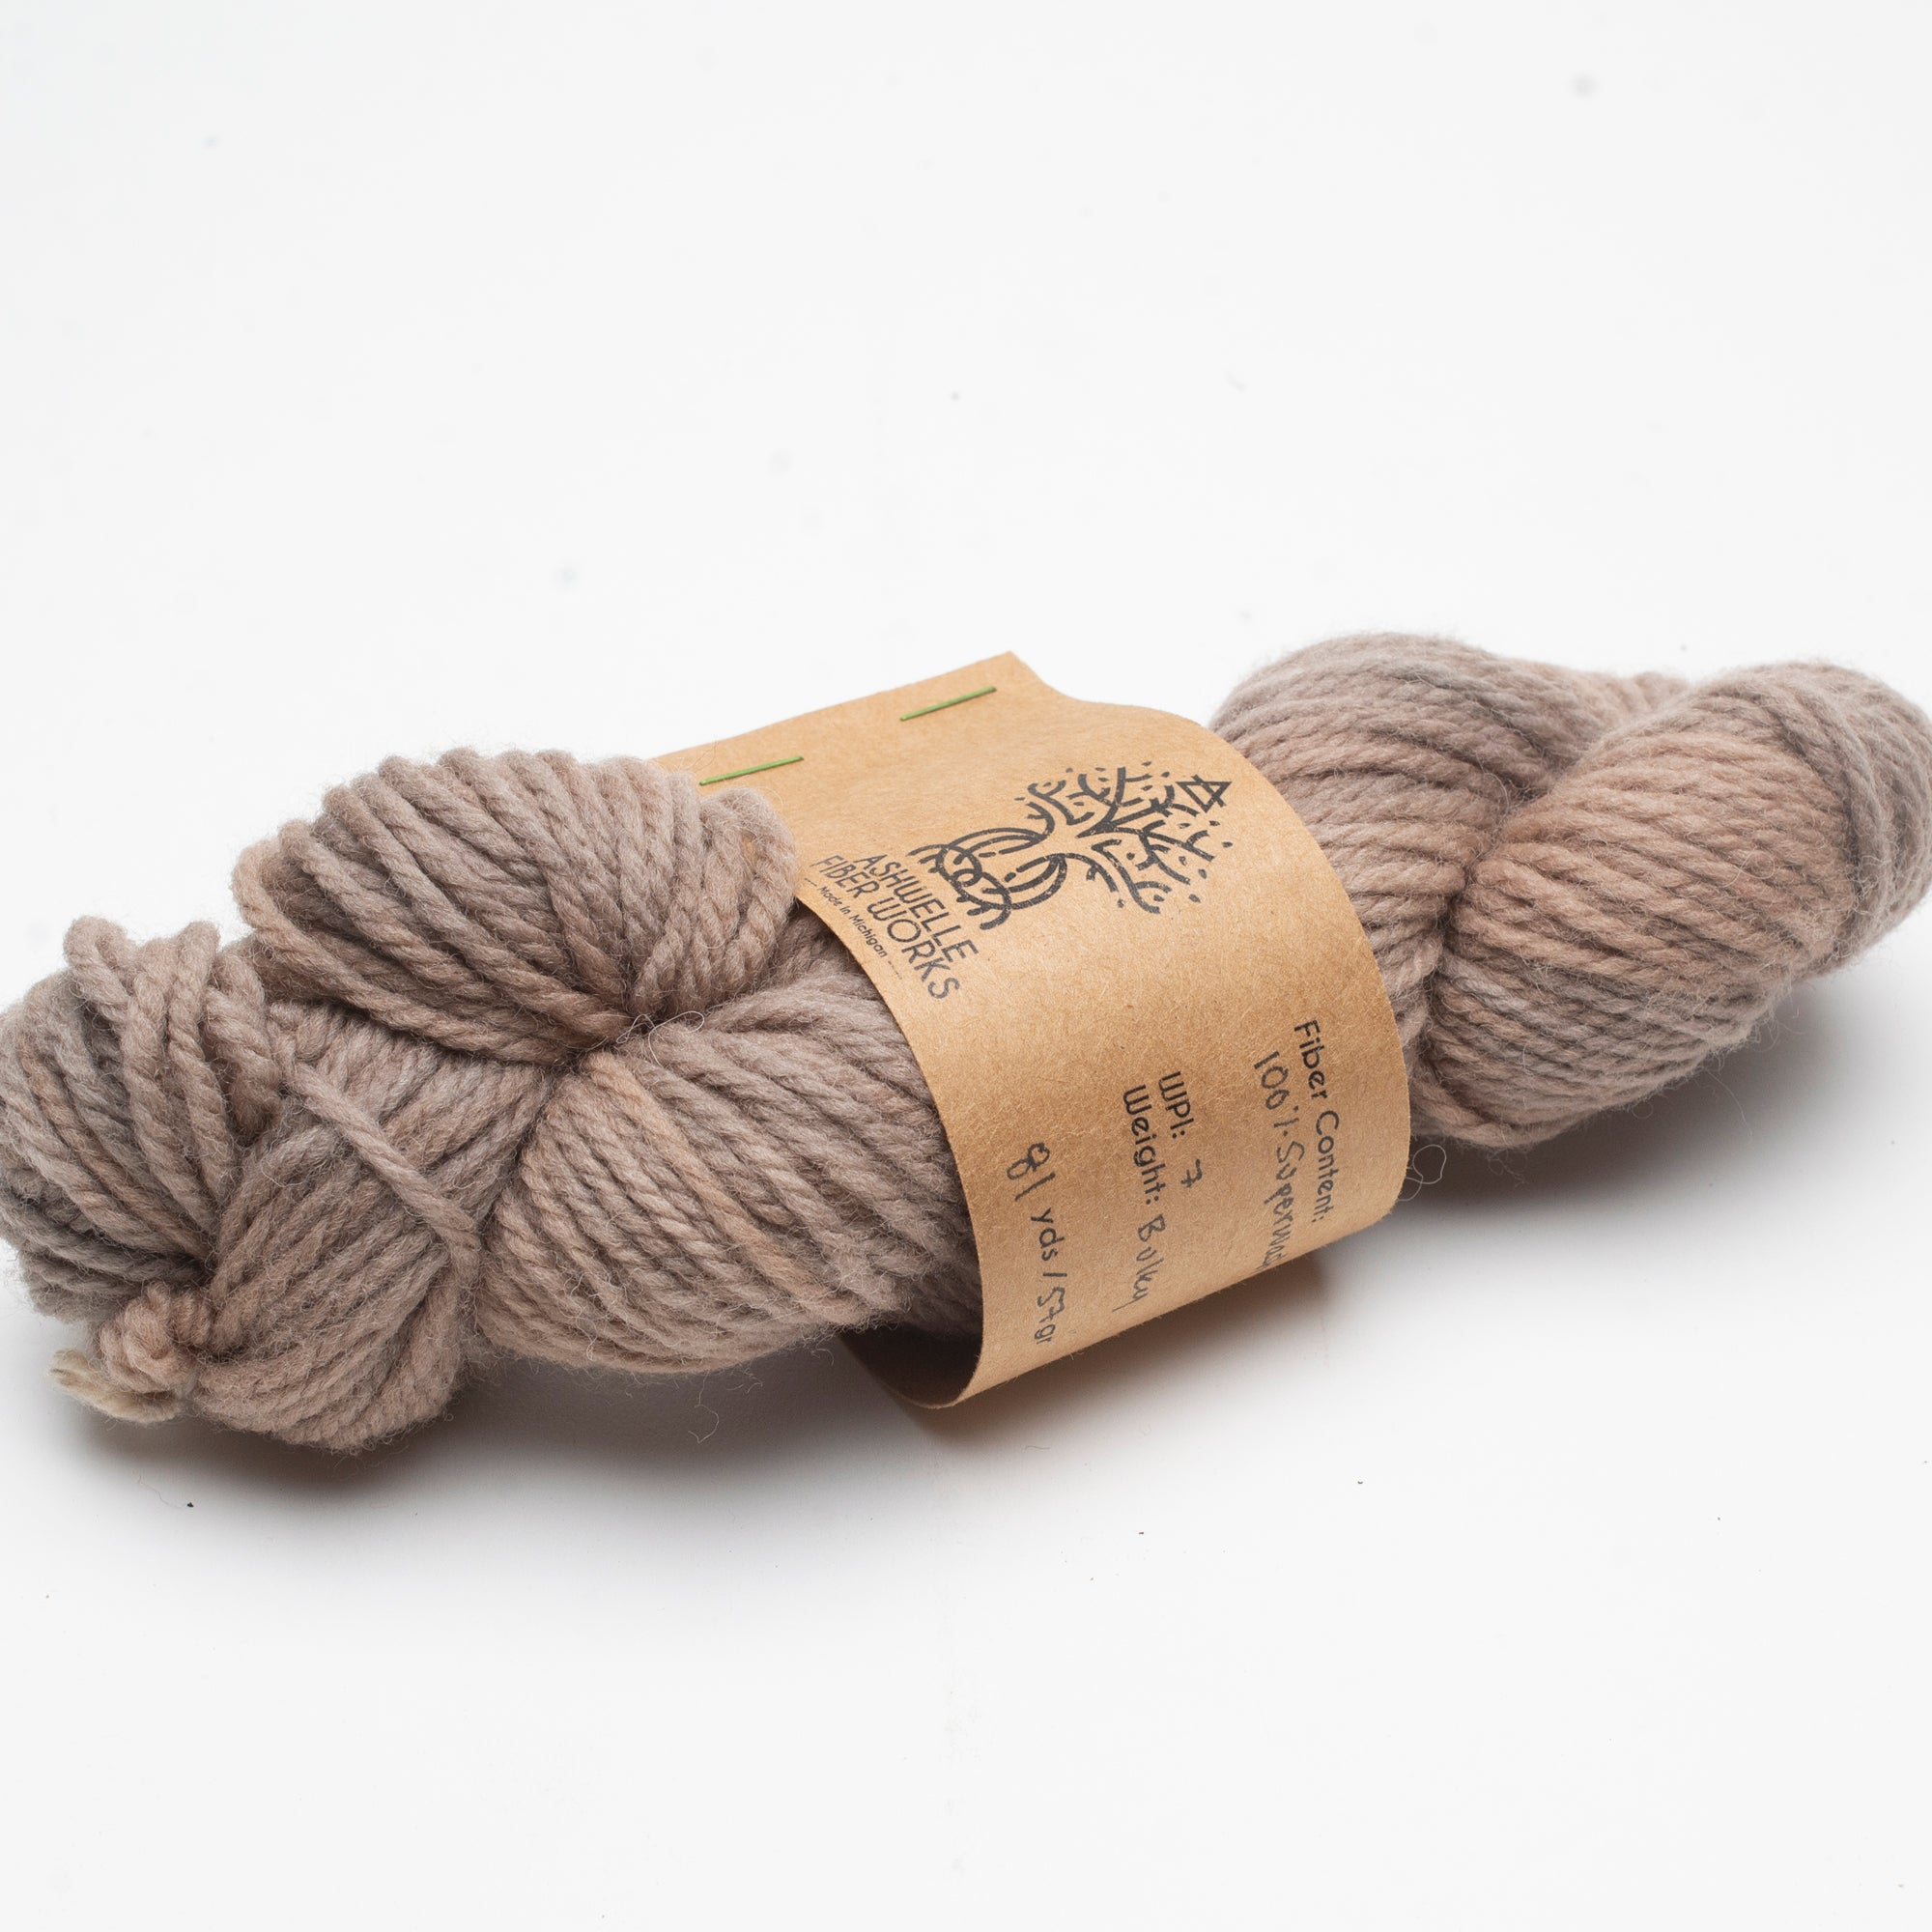 Yarn - Naturally Dyed with Purple Carrot and Iron